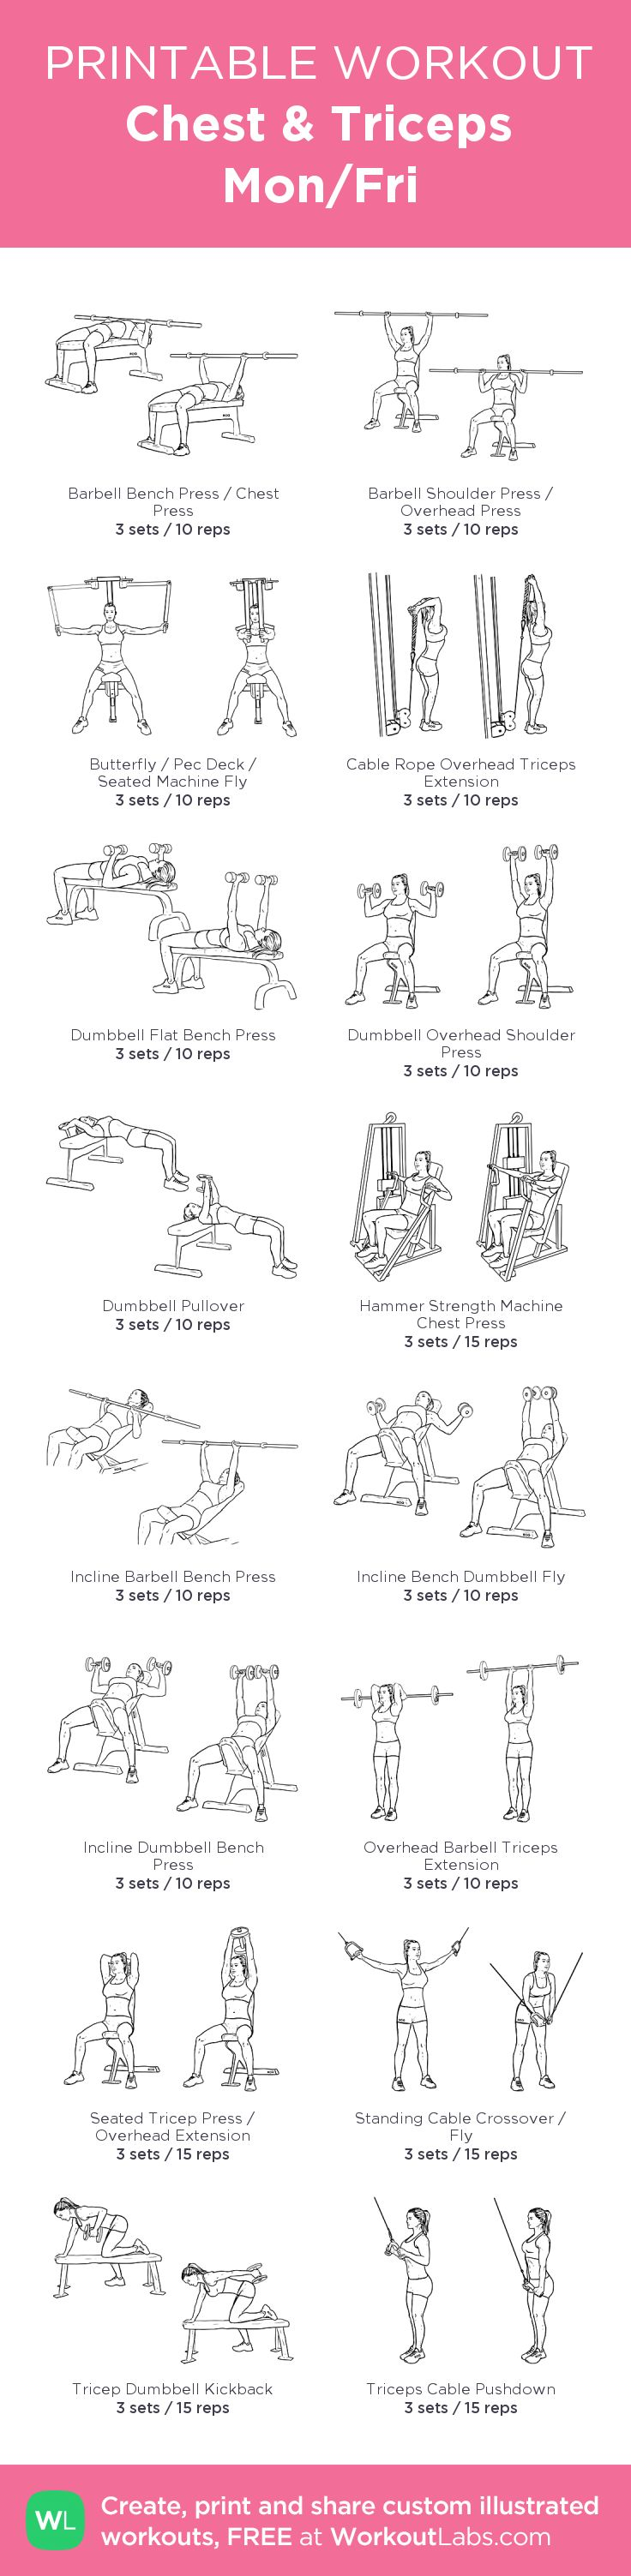 Chest & Triceps Mon/Fri: my visual workout created at WorkoutLabs.com • Click through to customize and download as a FREE PDF! #customworkout